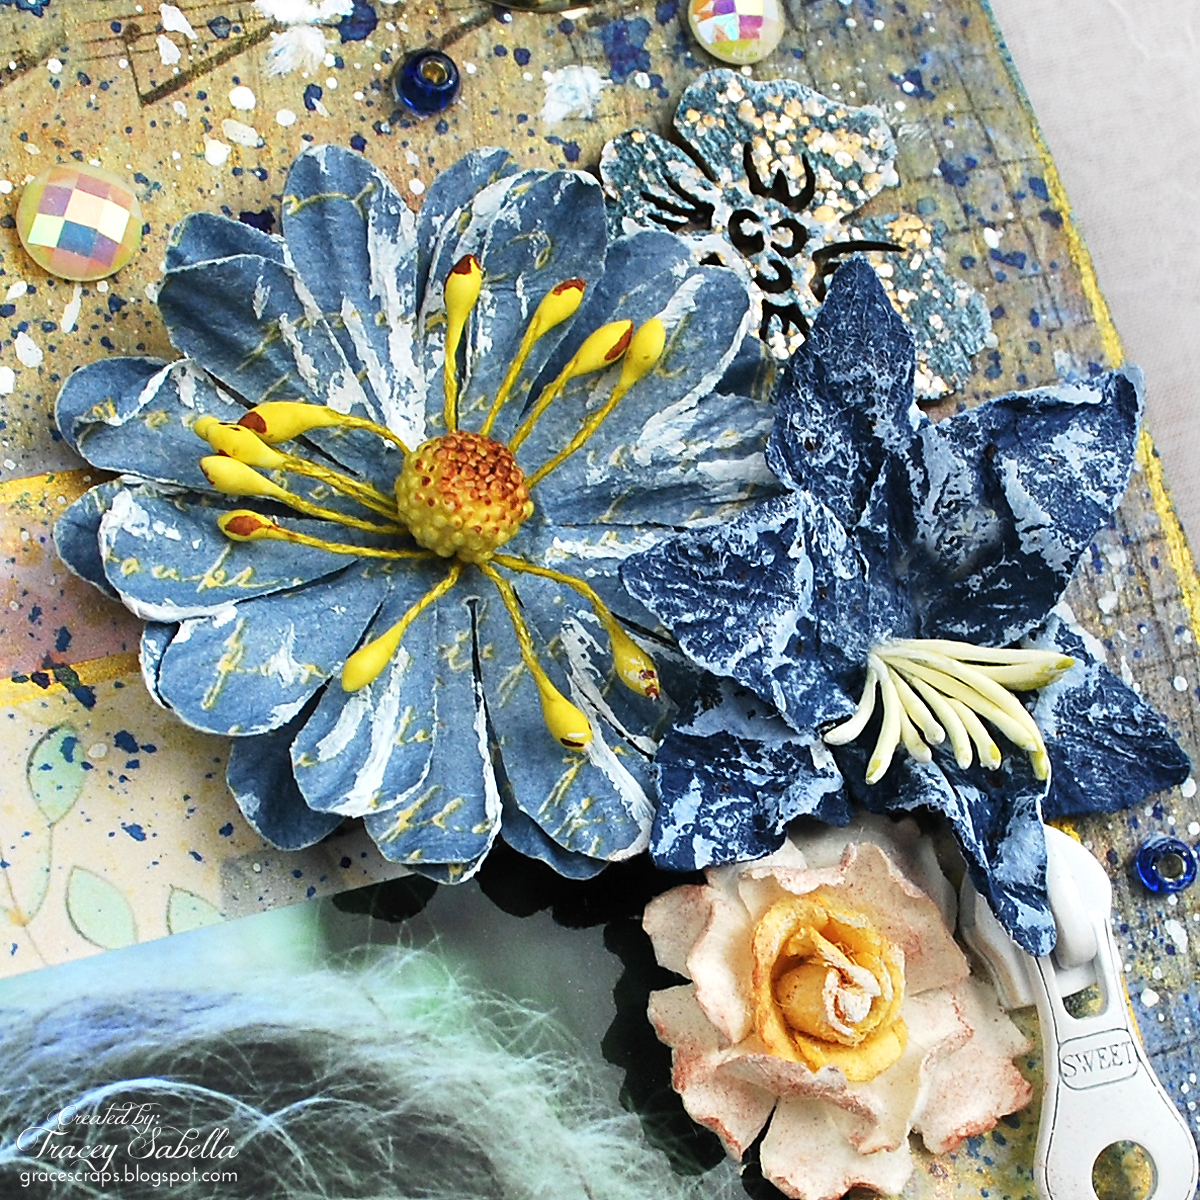 Mixed Media Layout by Tracey Sabella for Berry71Bleu, summer, handcrafted flower